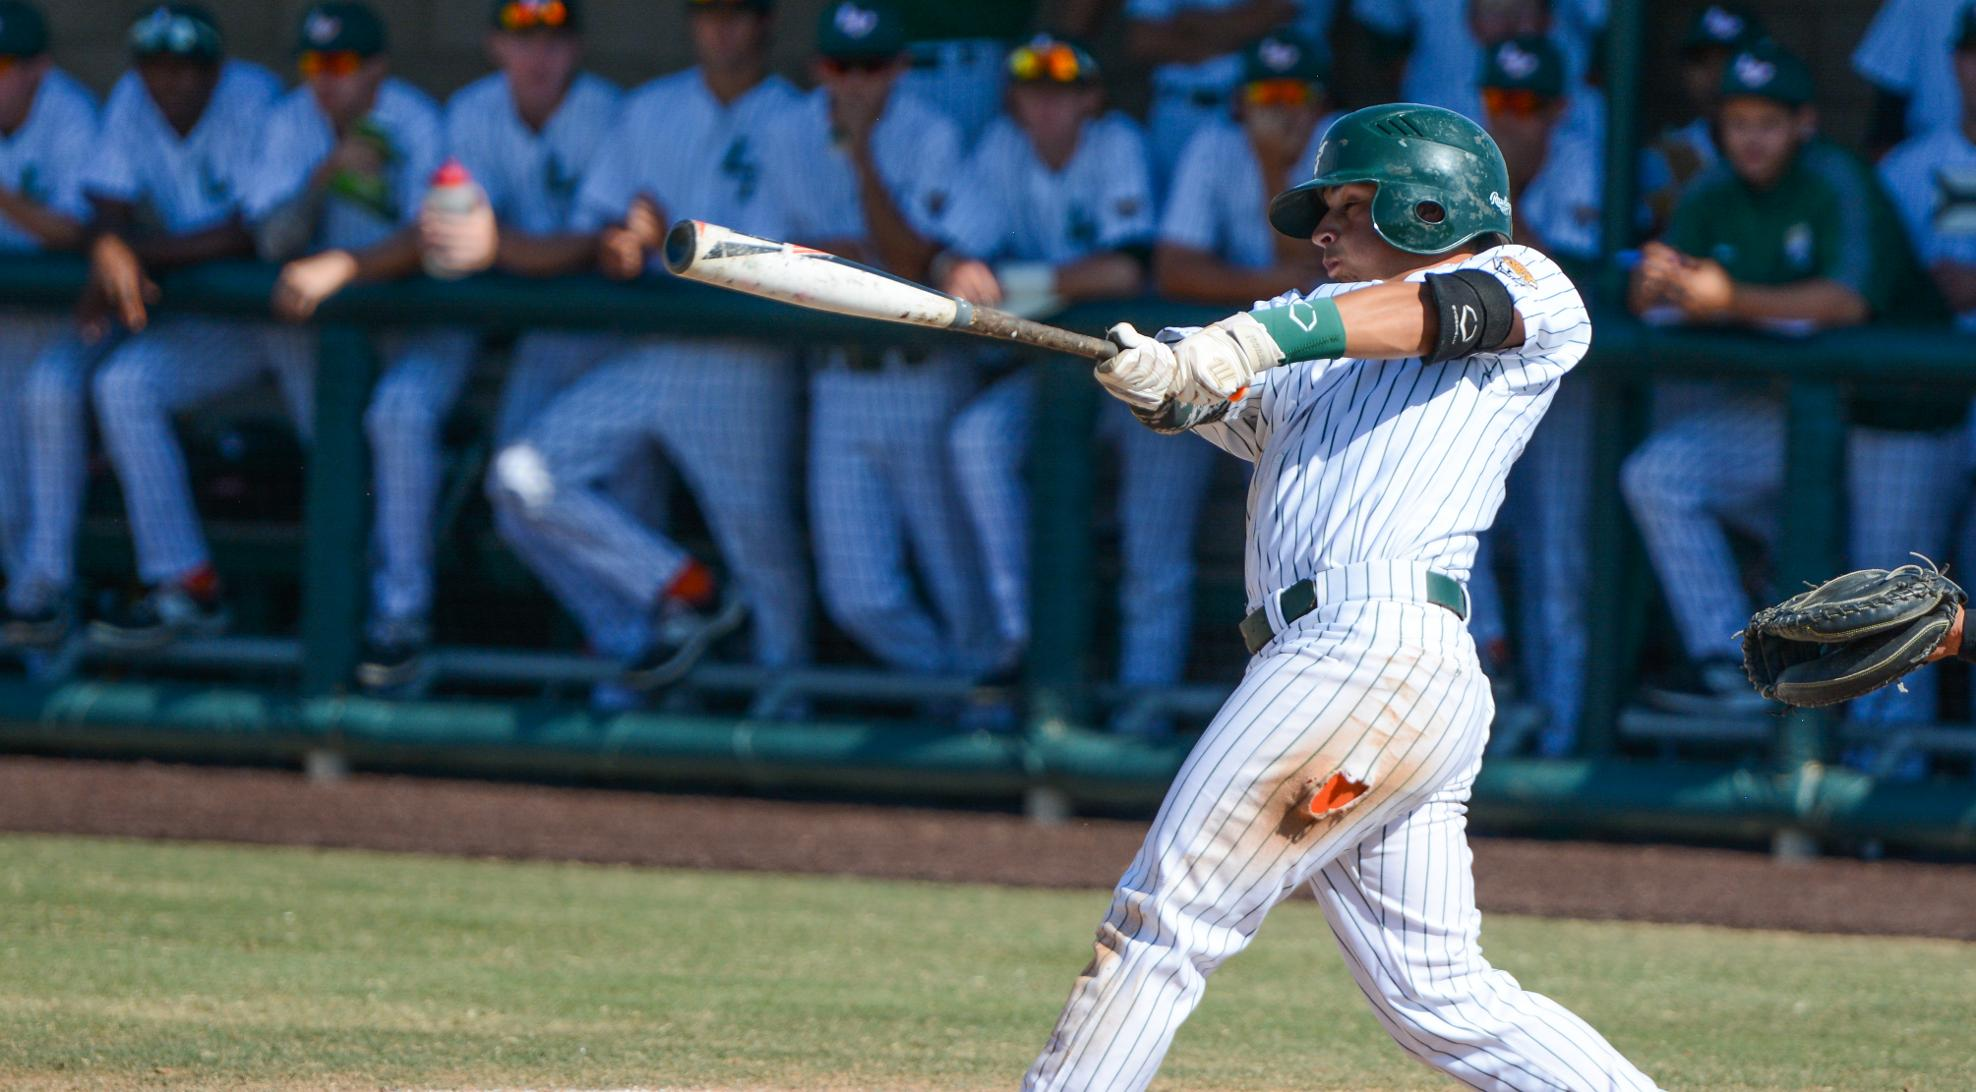 Baseball falls to No. 24/11 Occidental, 8-2